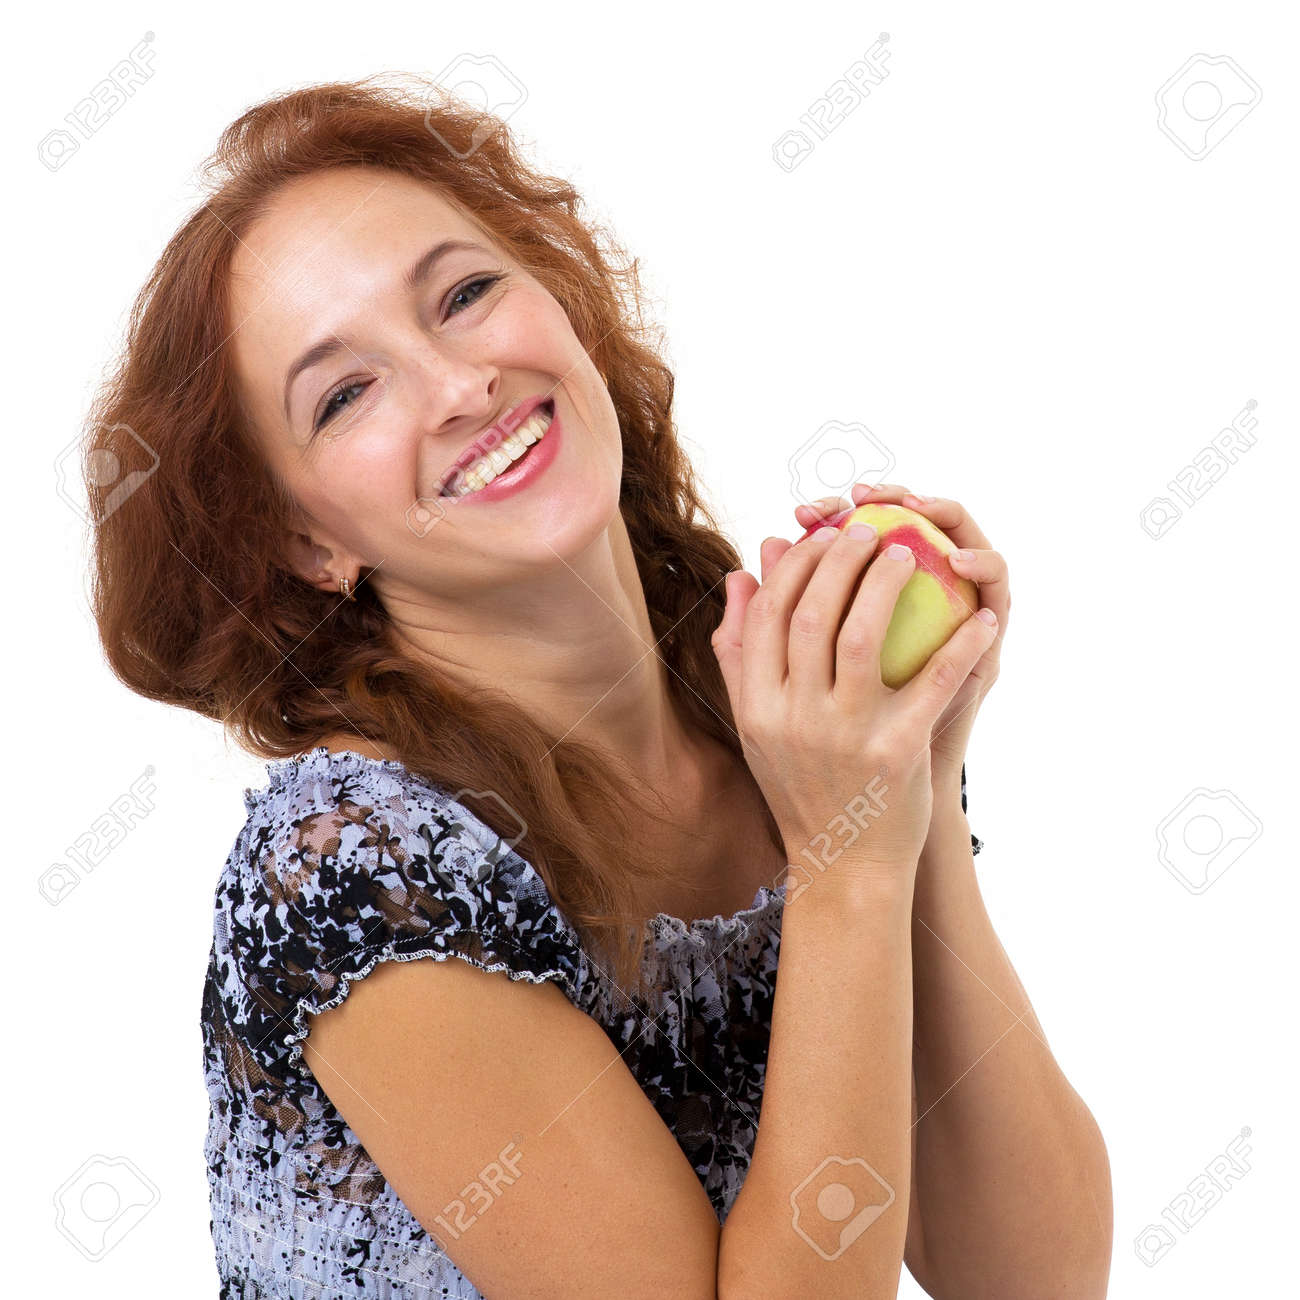 Happy woman holding fresh red apple. - 173426137